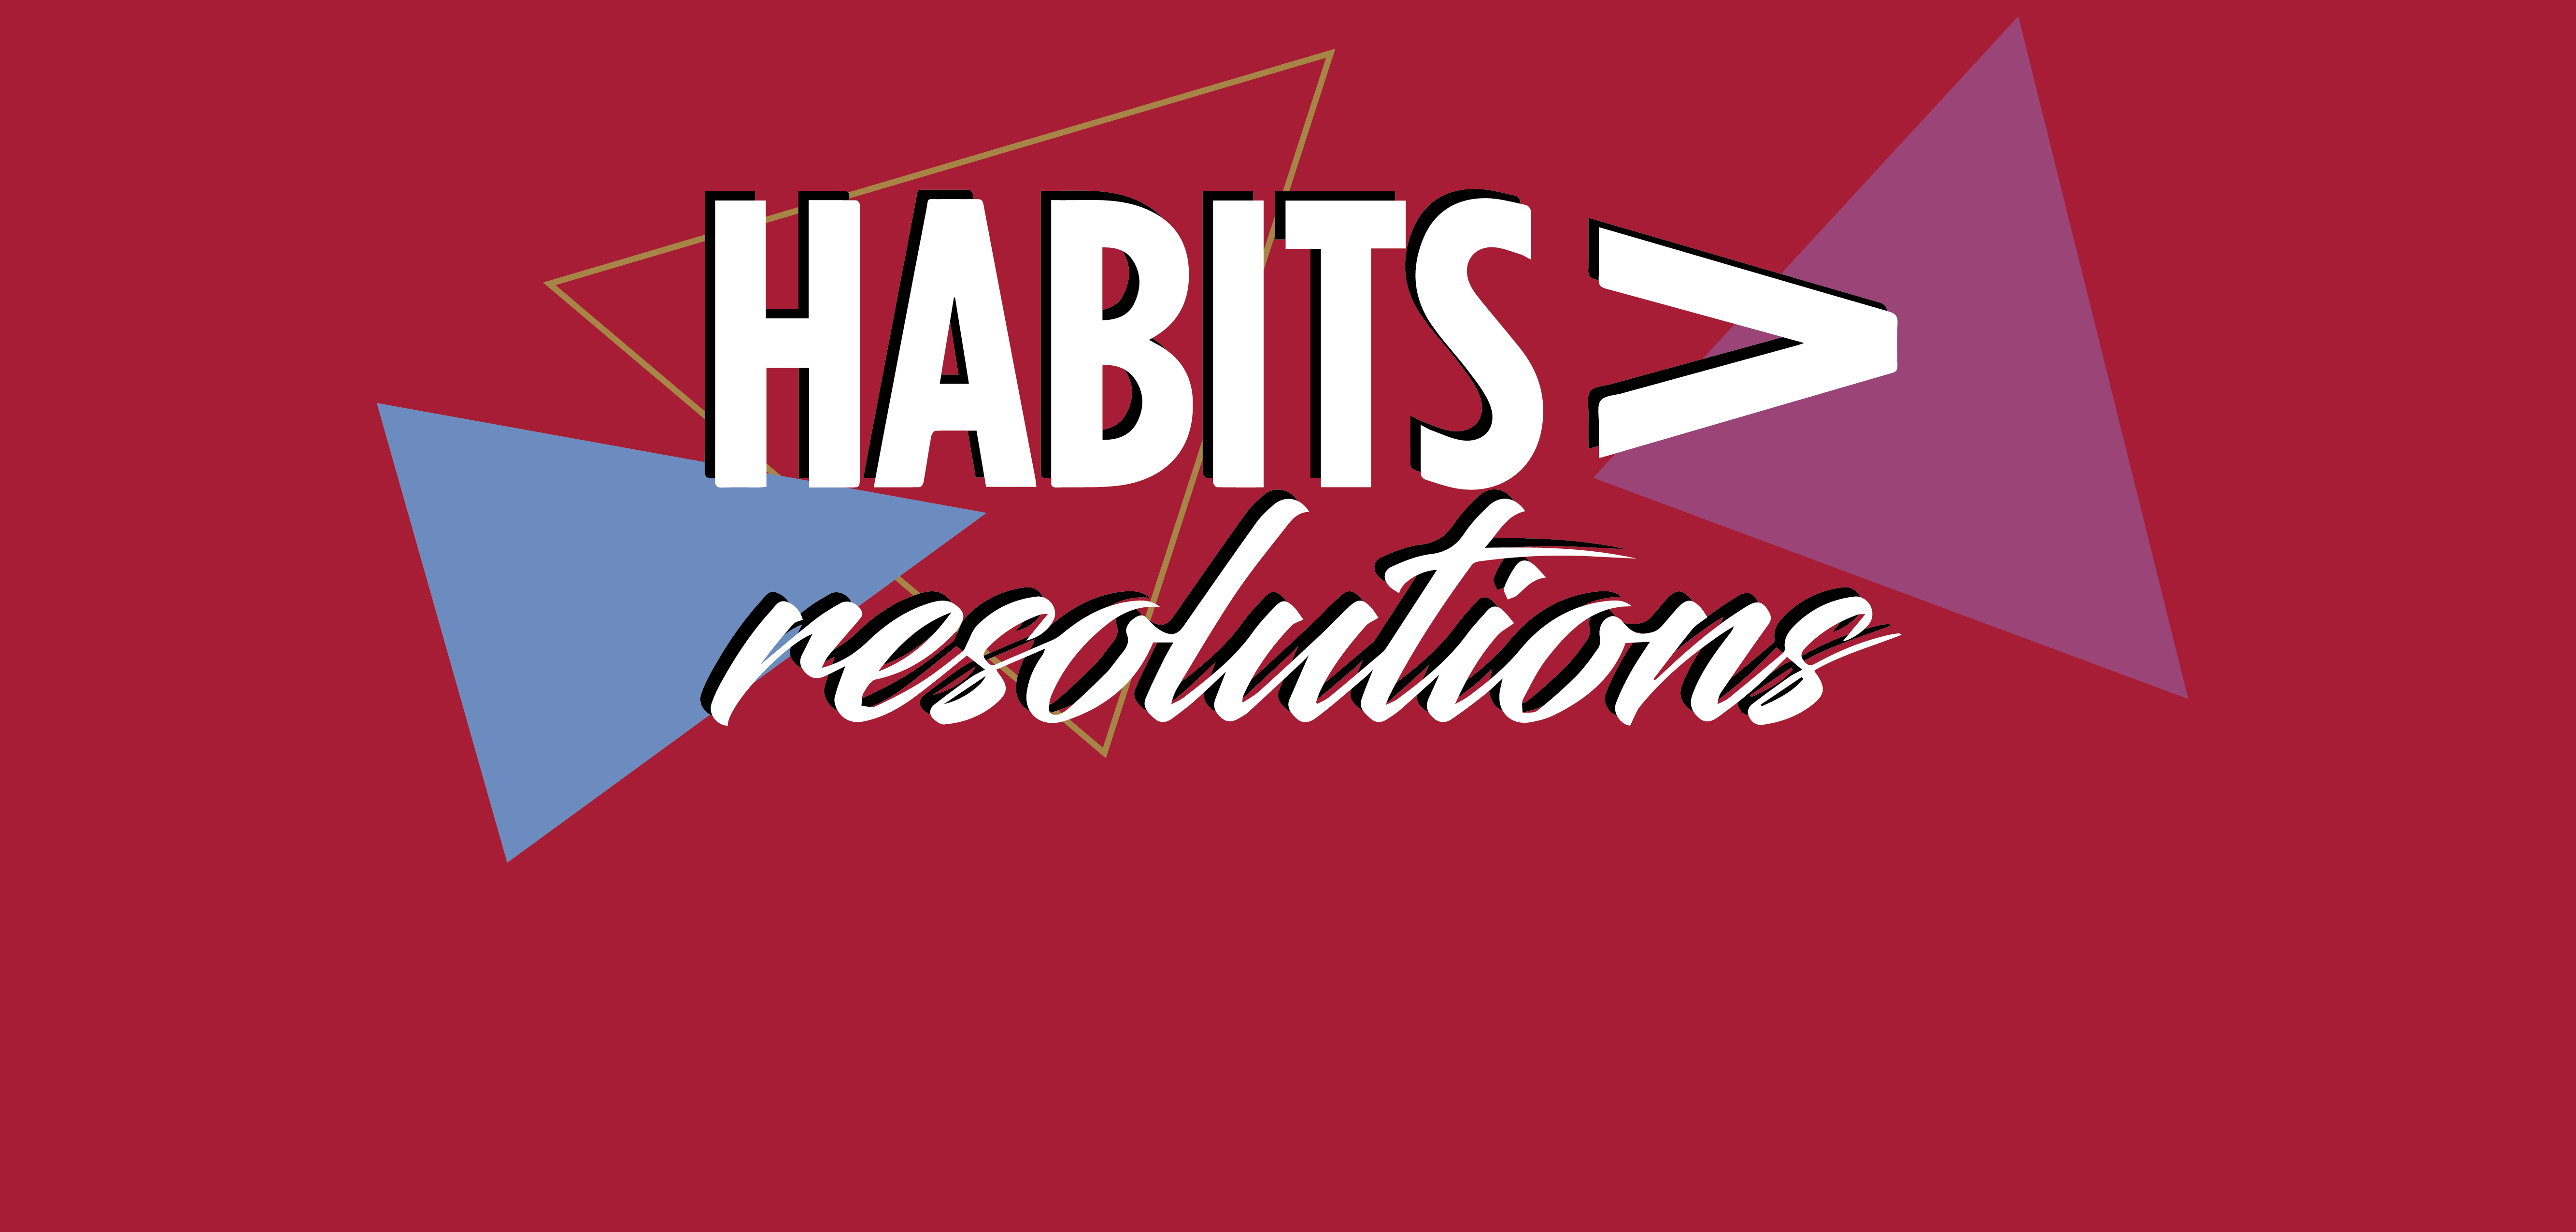 habits greater than resolutions